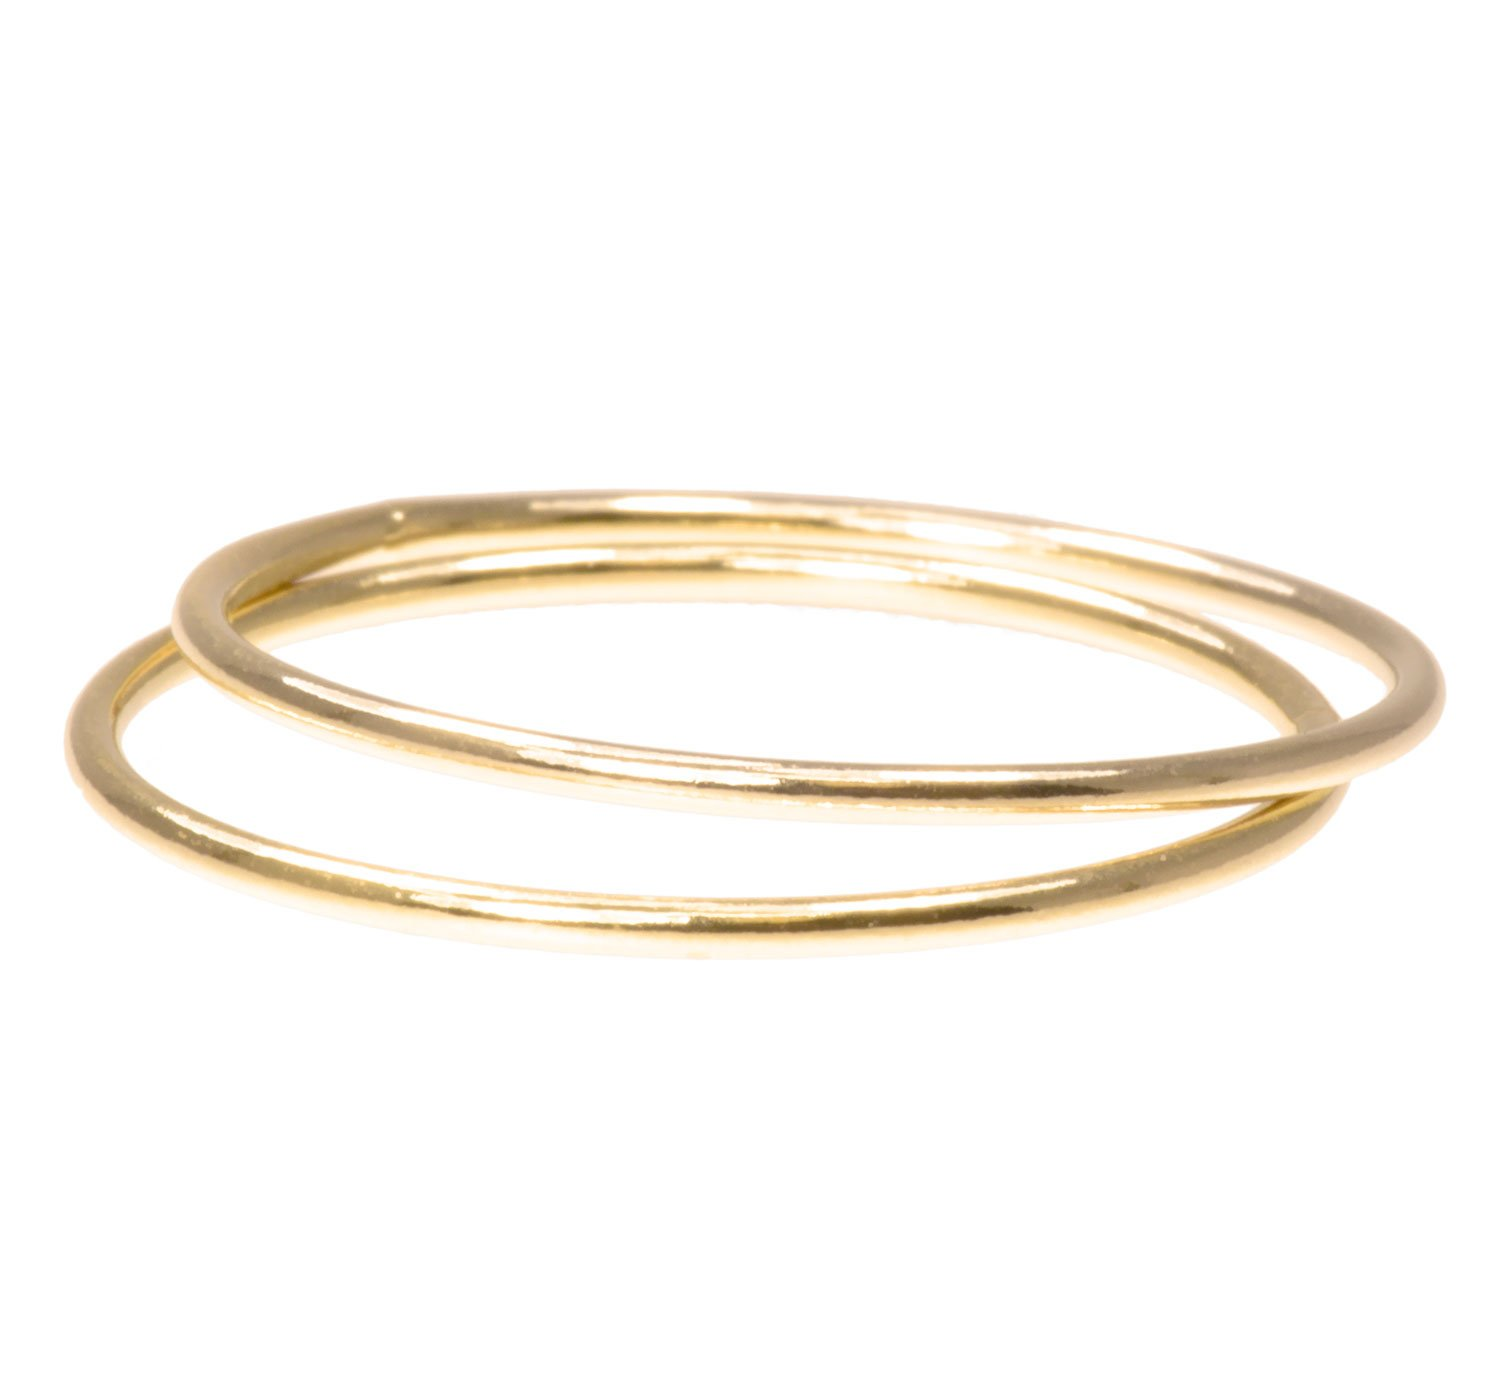 2 14K Gold Filled Stacking Rings 1mm Round Size 6